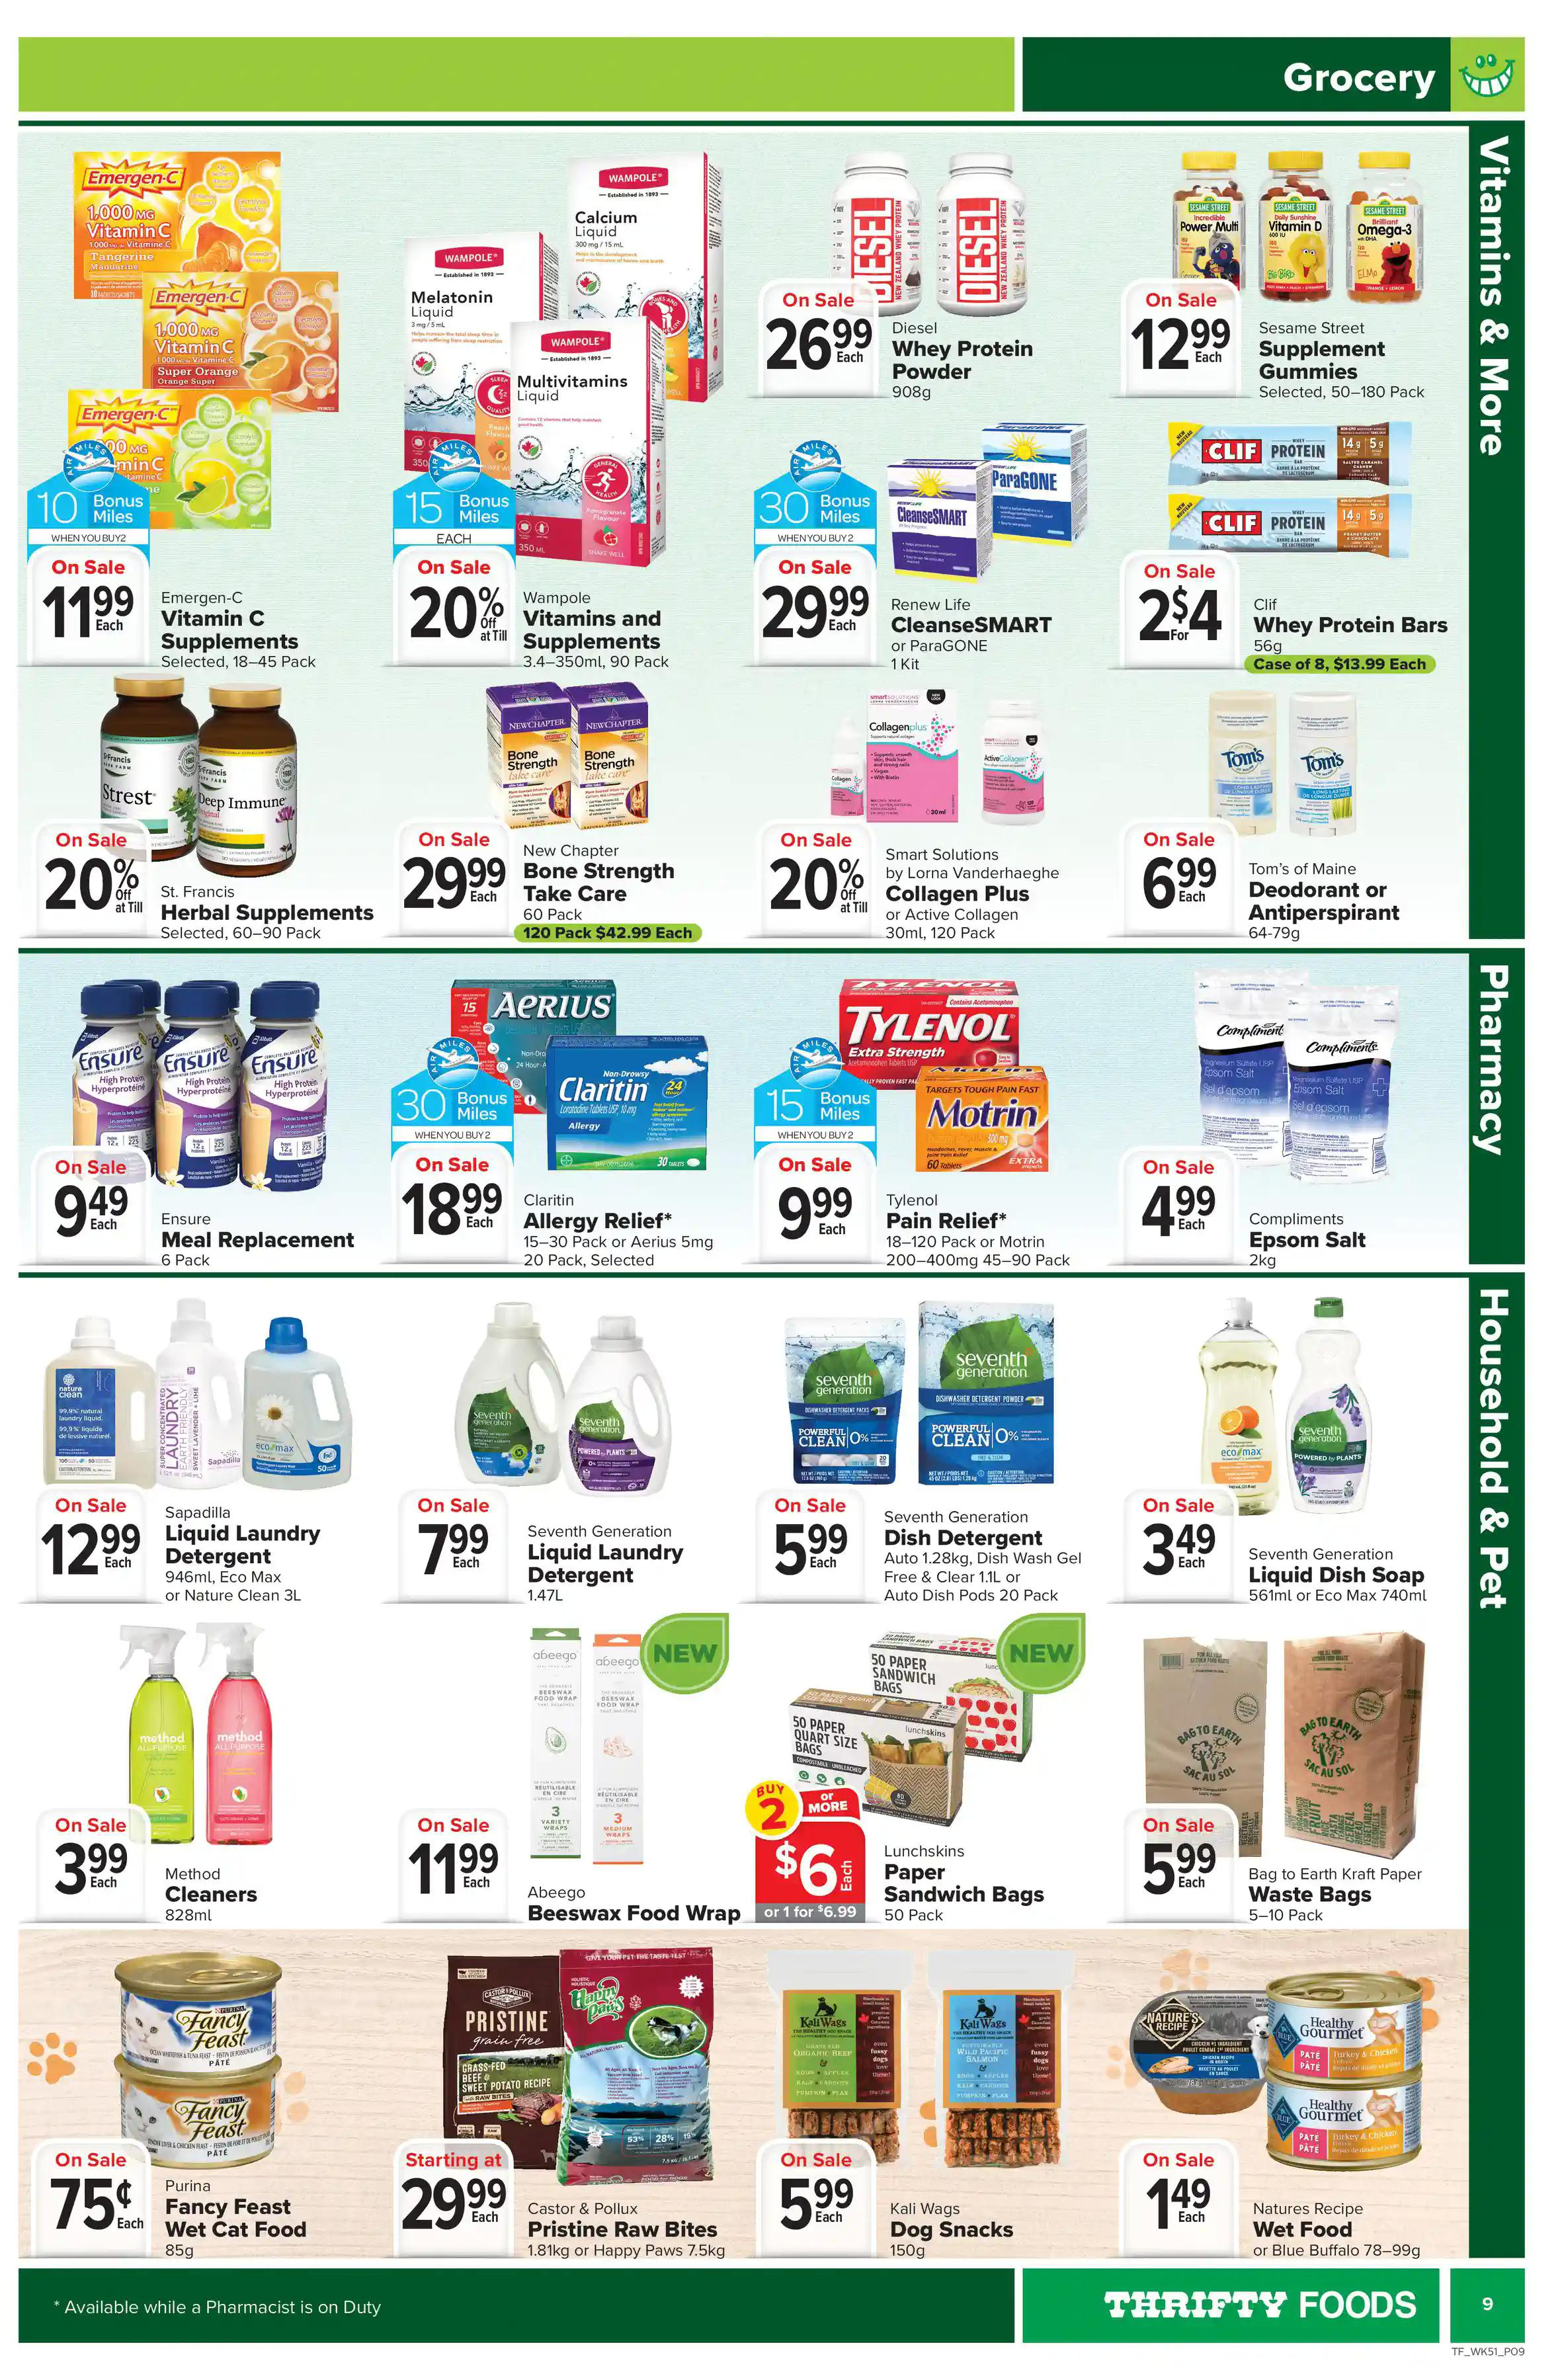 Thrifty Foods - Weekly Flyer Specials - Page 13